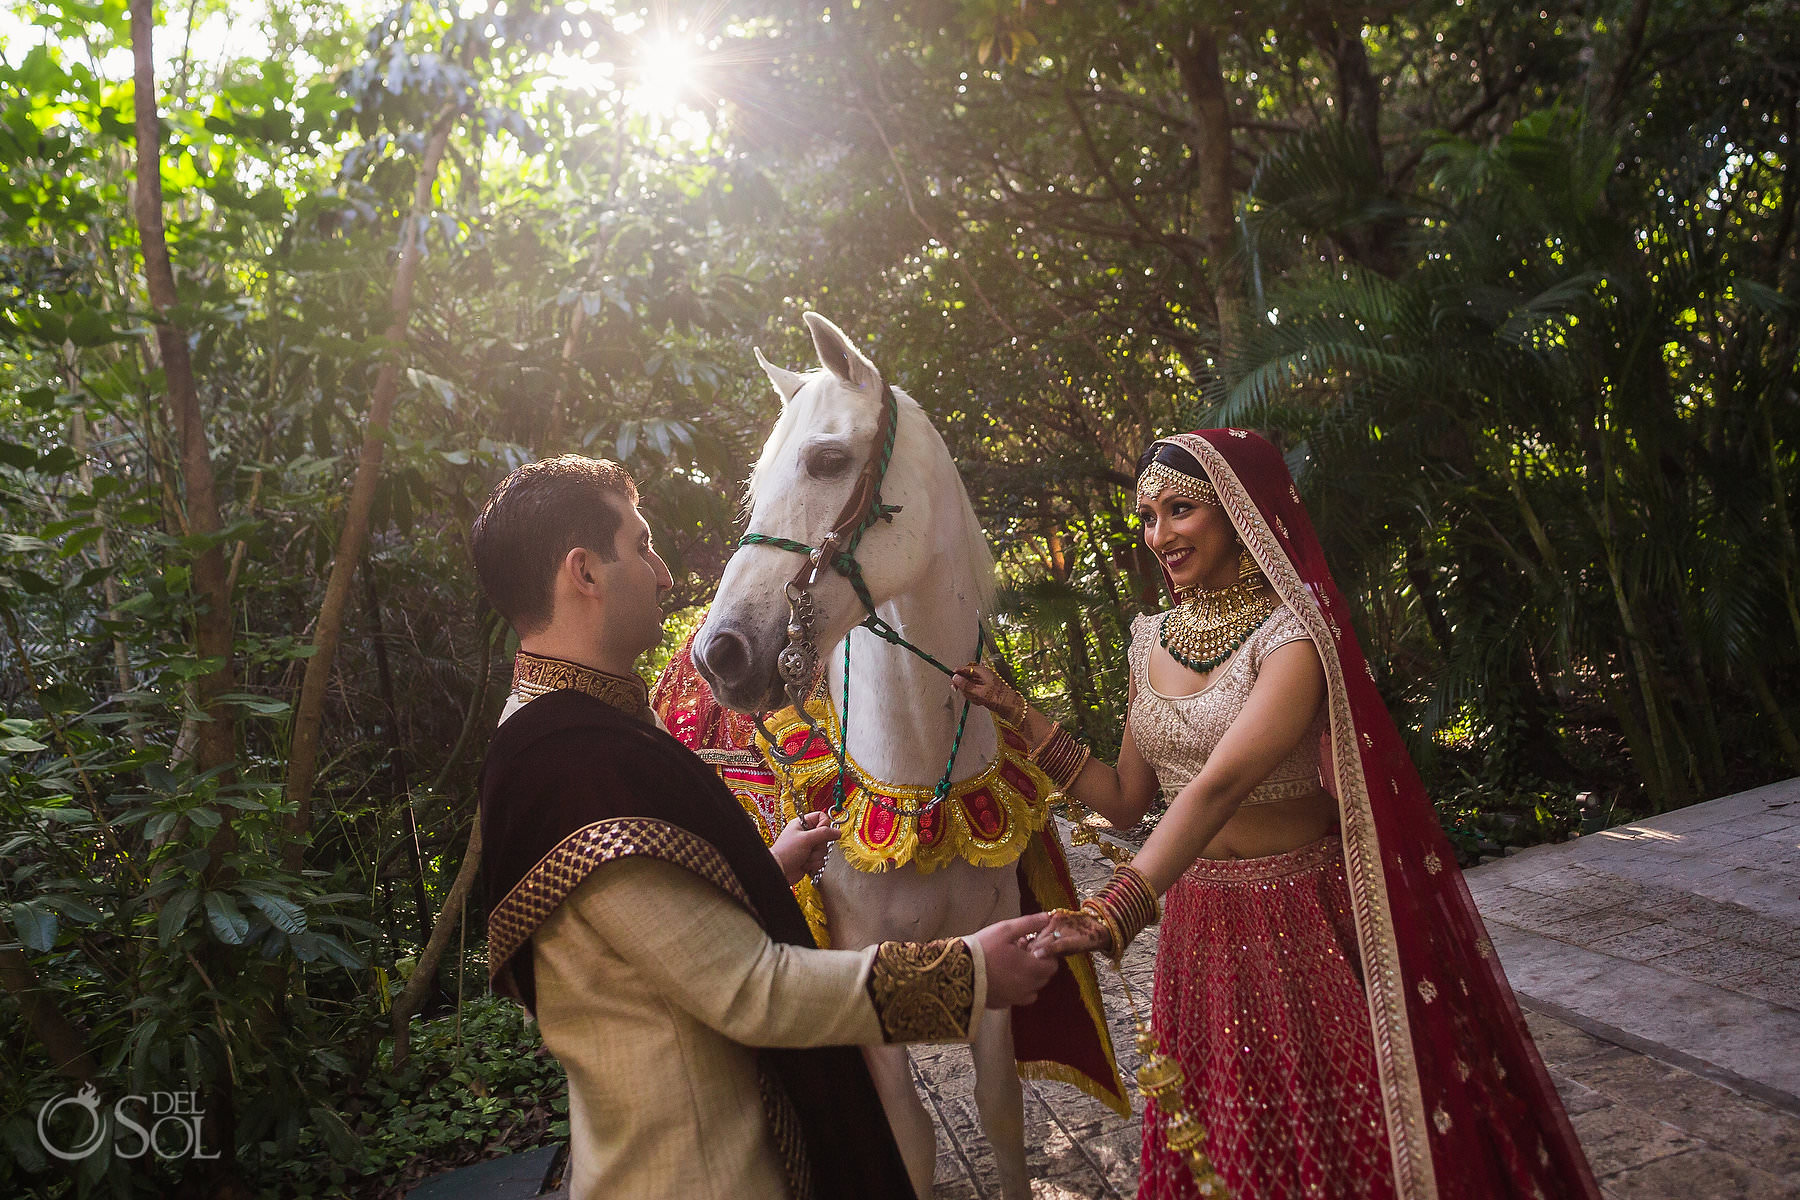 Mexico South Asian Wedding first look Baarat white Horse Dreams Tulum Riviera Maya Mexico